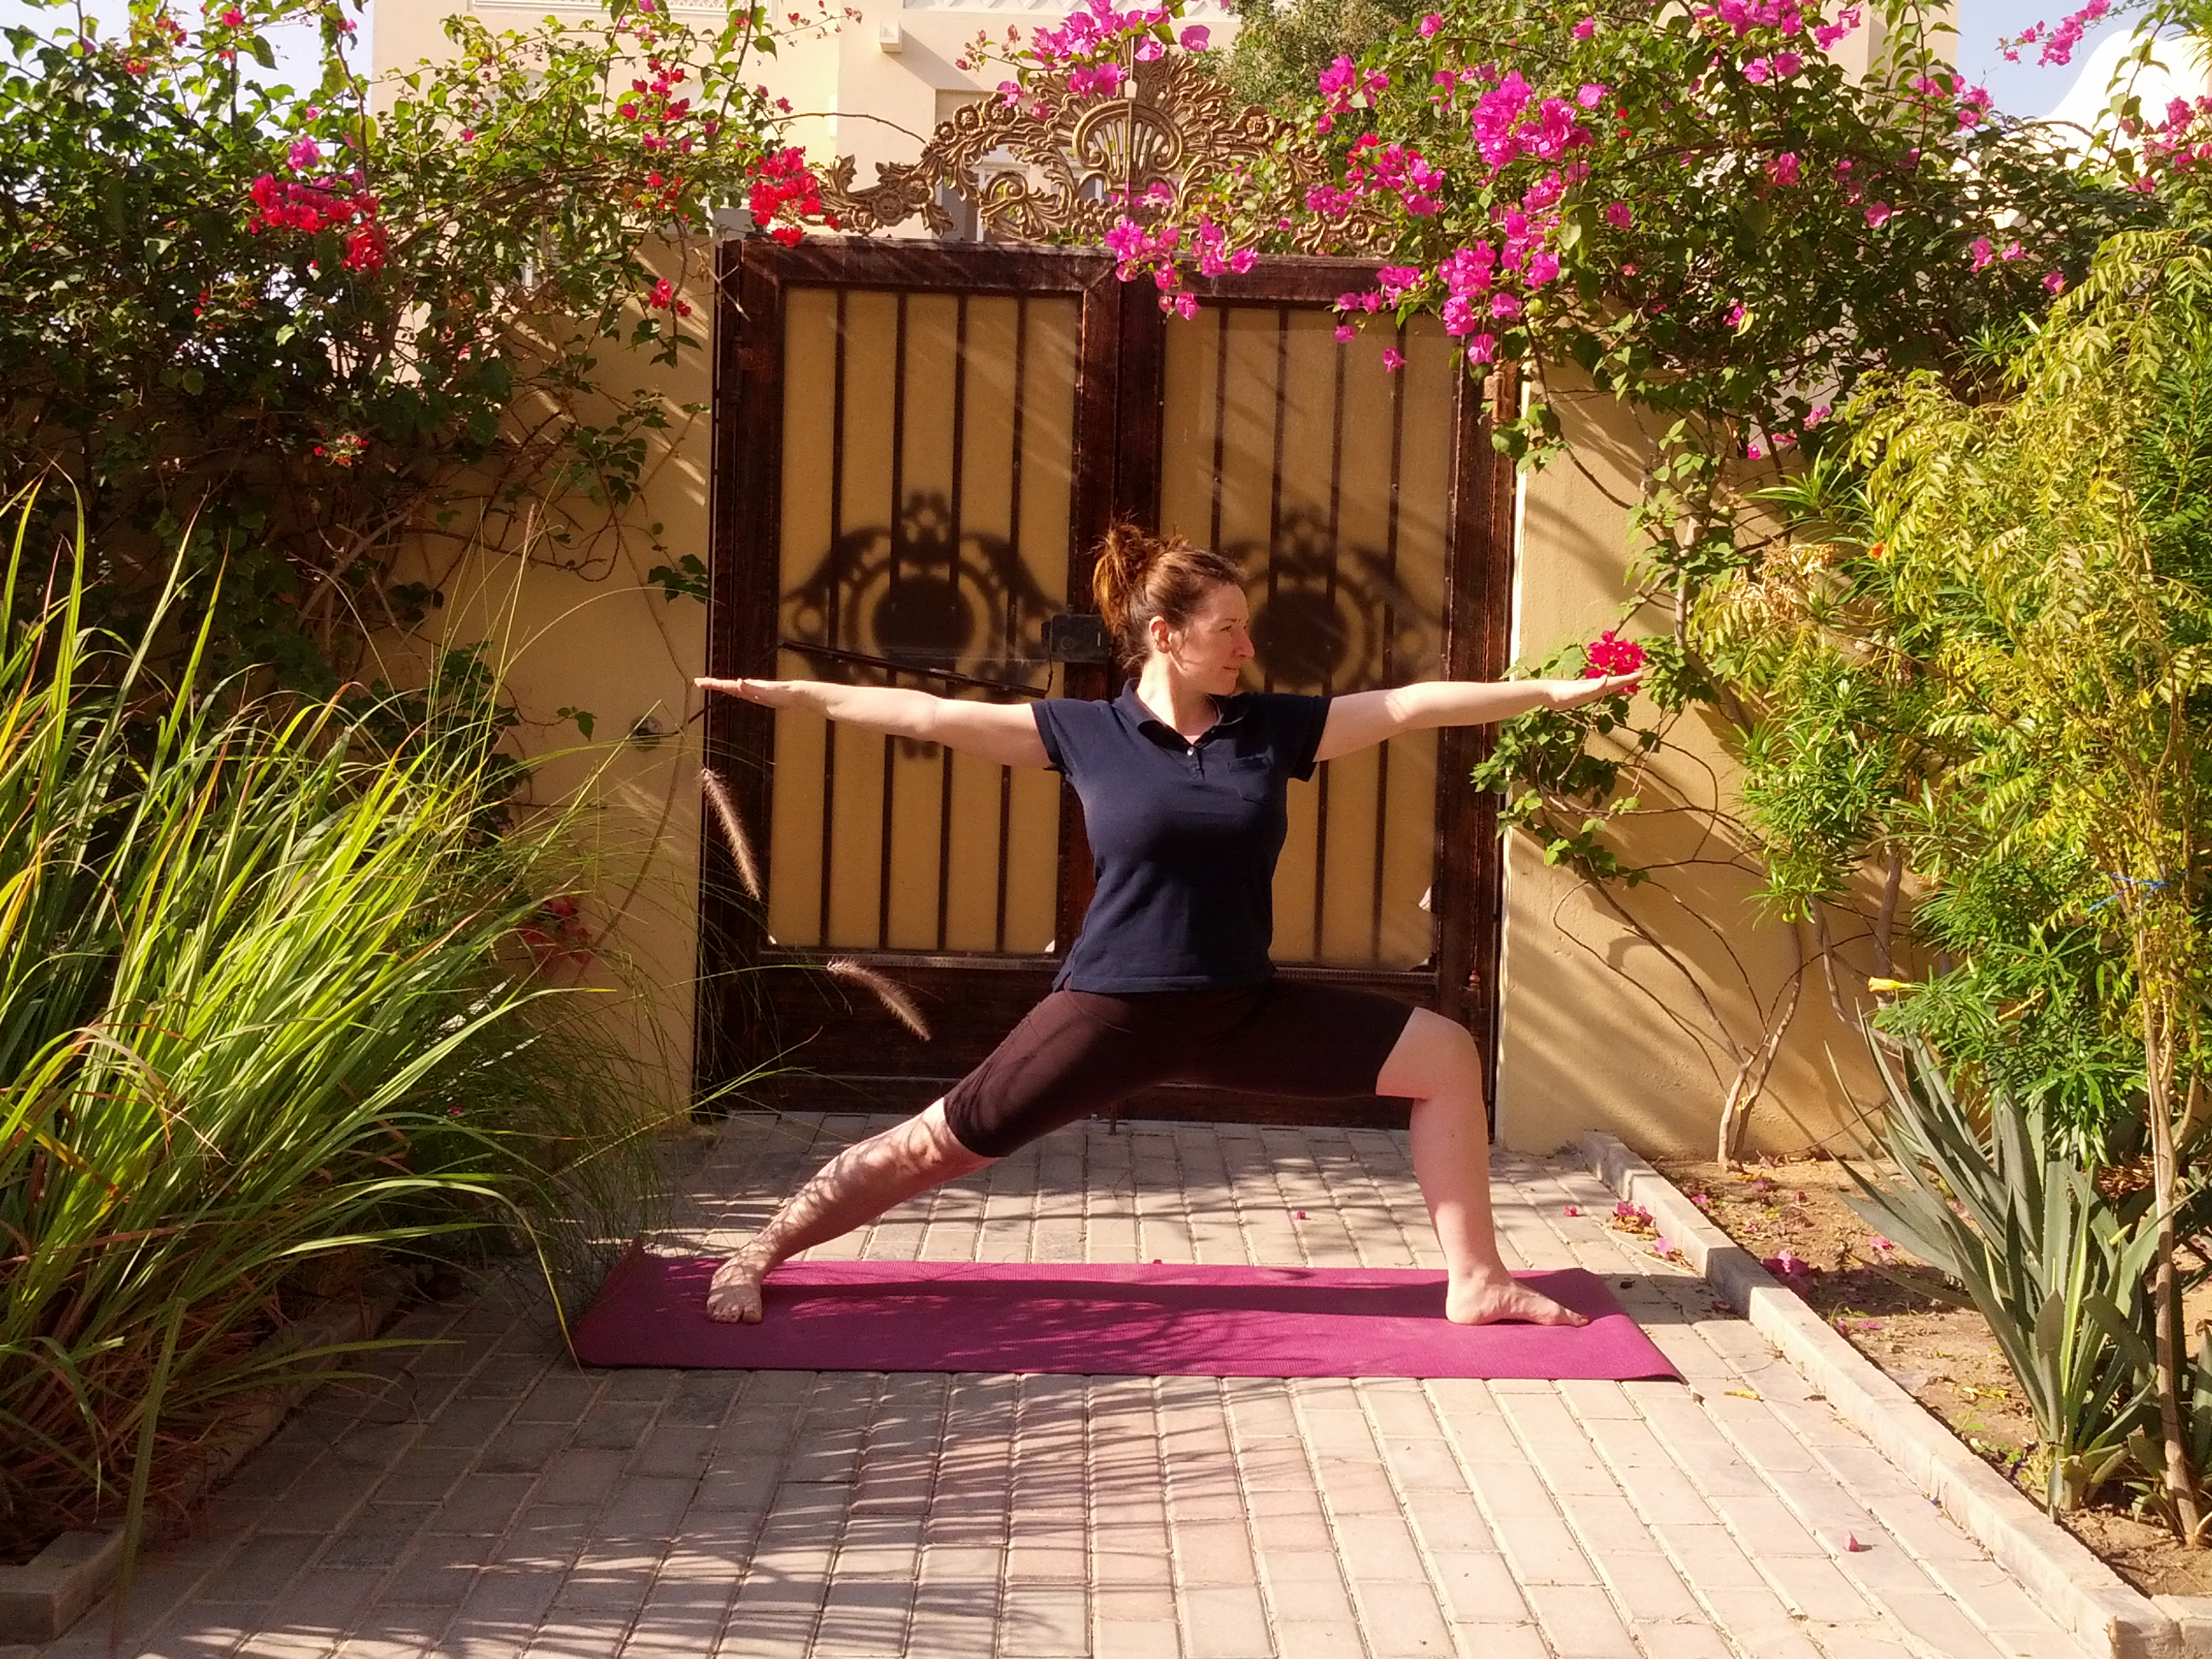 Virabhadrasana II - The Warrior pose (2)